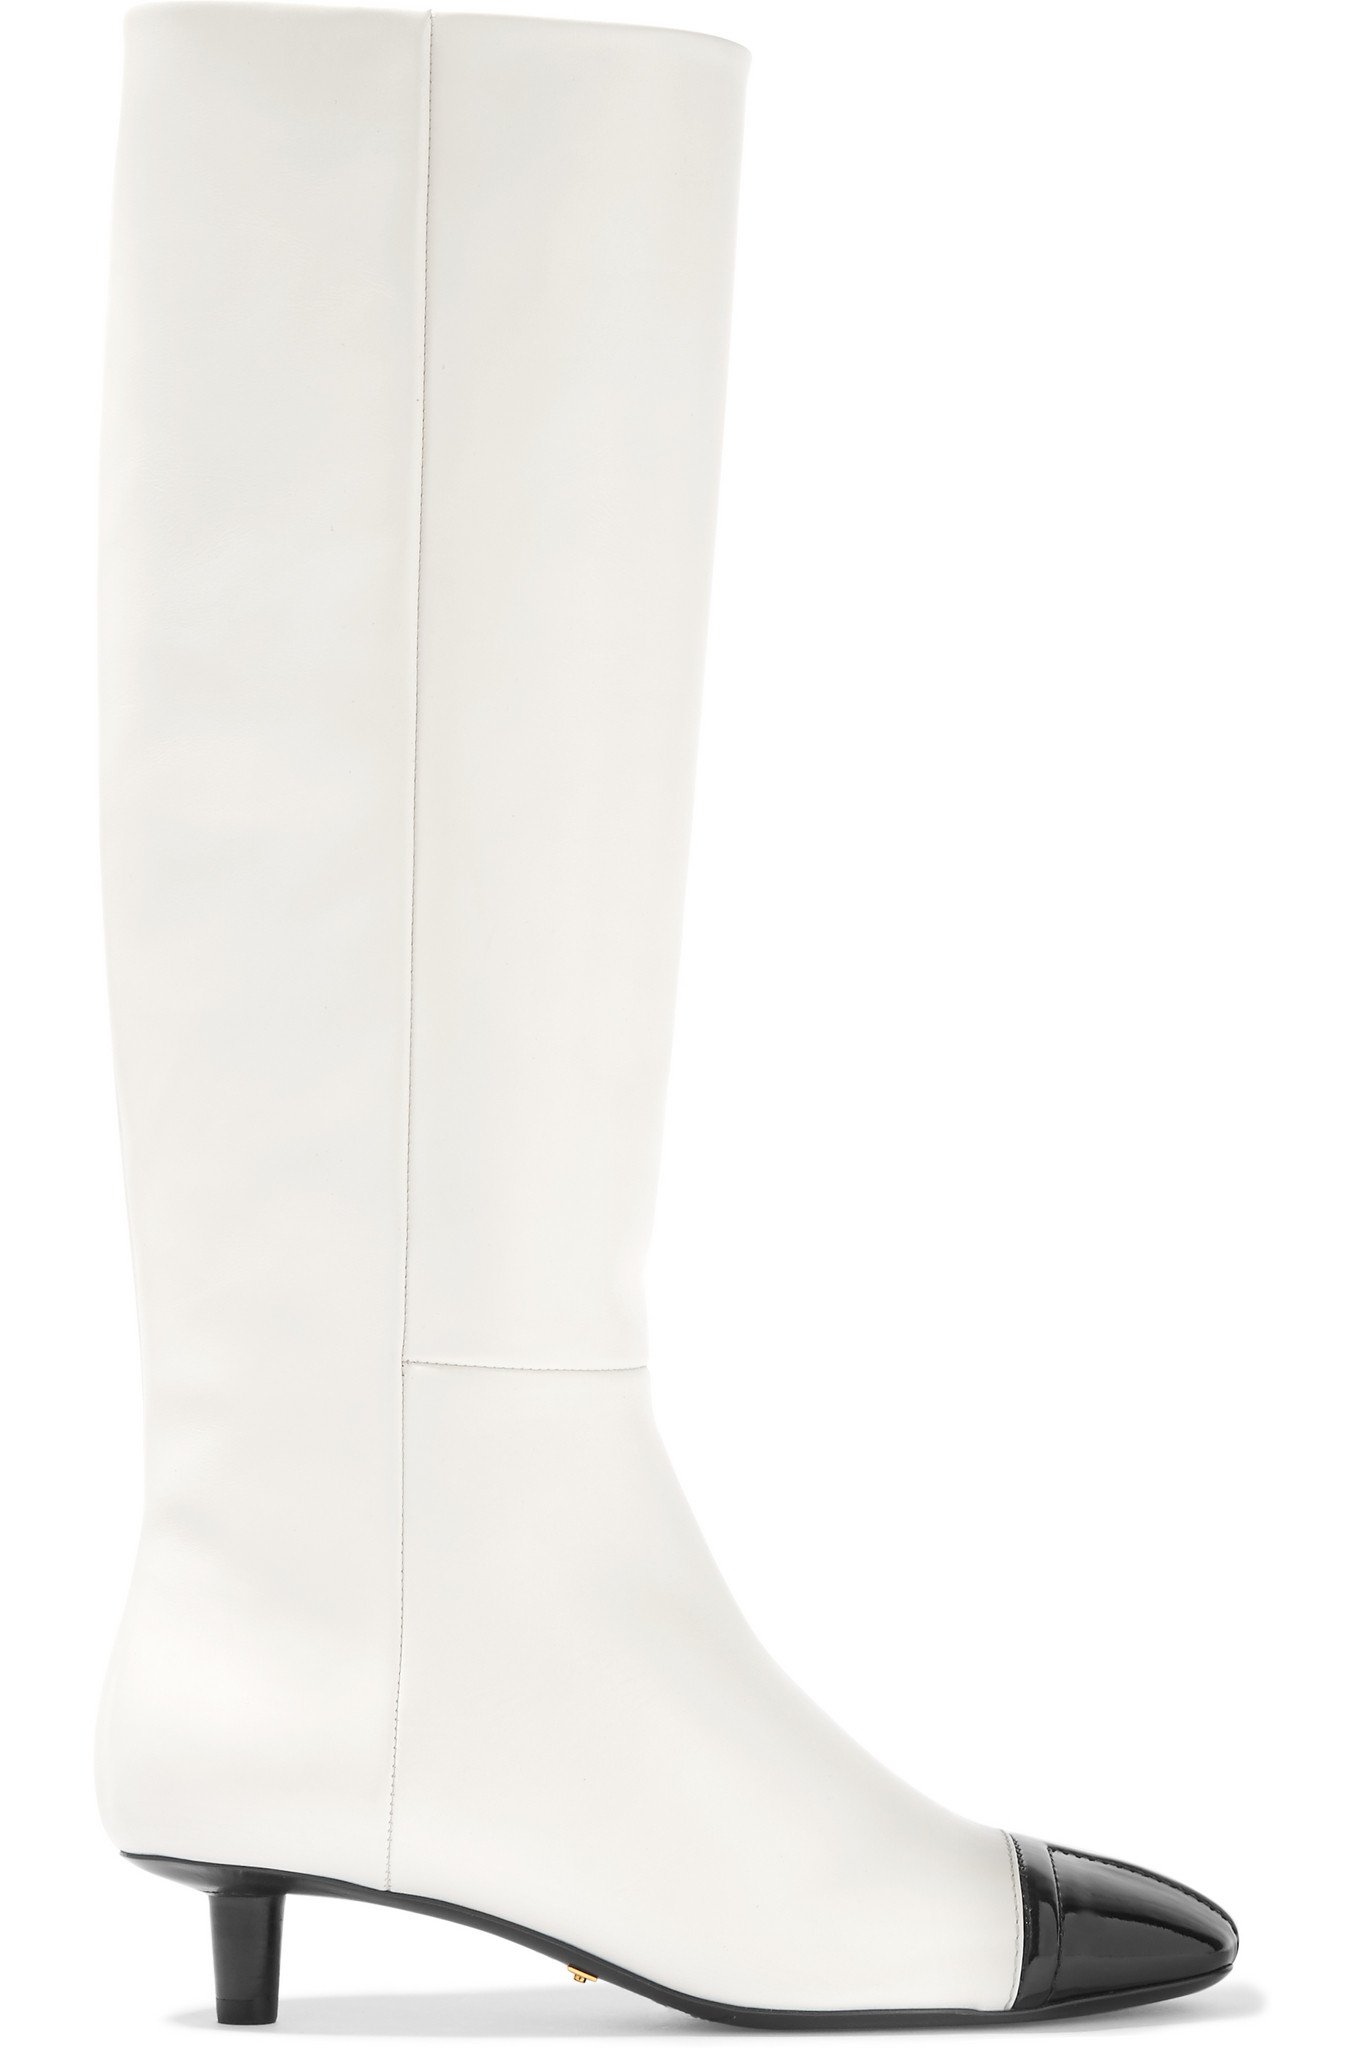 8b9d79fb56c4f Tom Ford Two-tone Matte And Patent-leather Knee Boots in White - Lyst